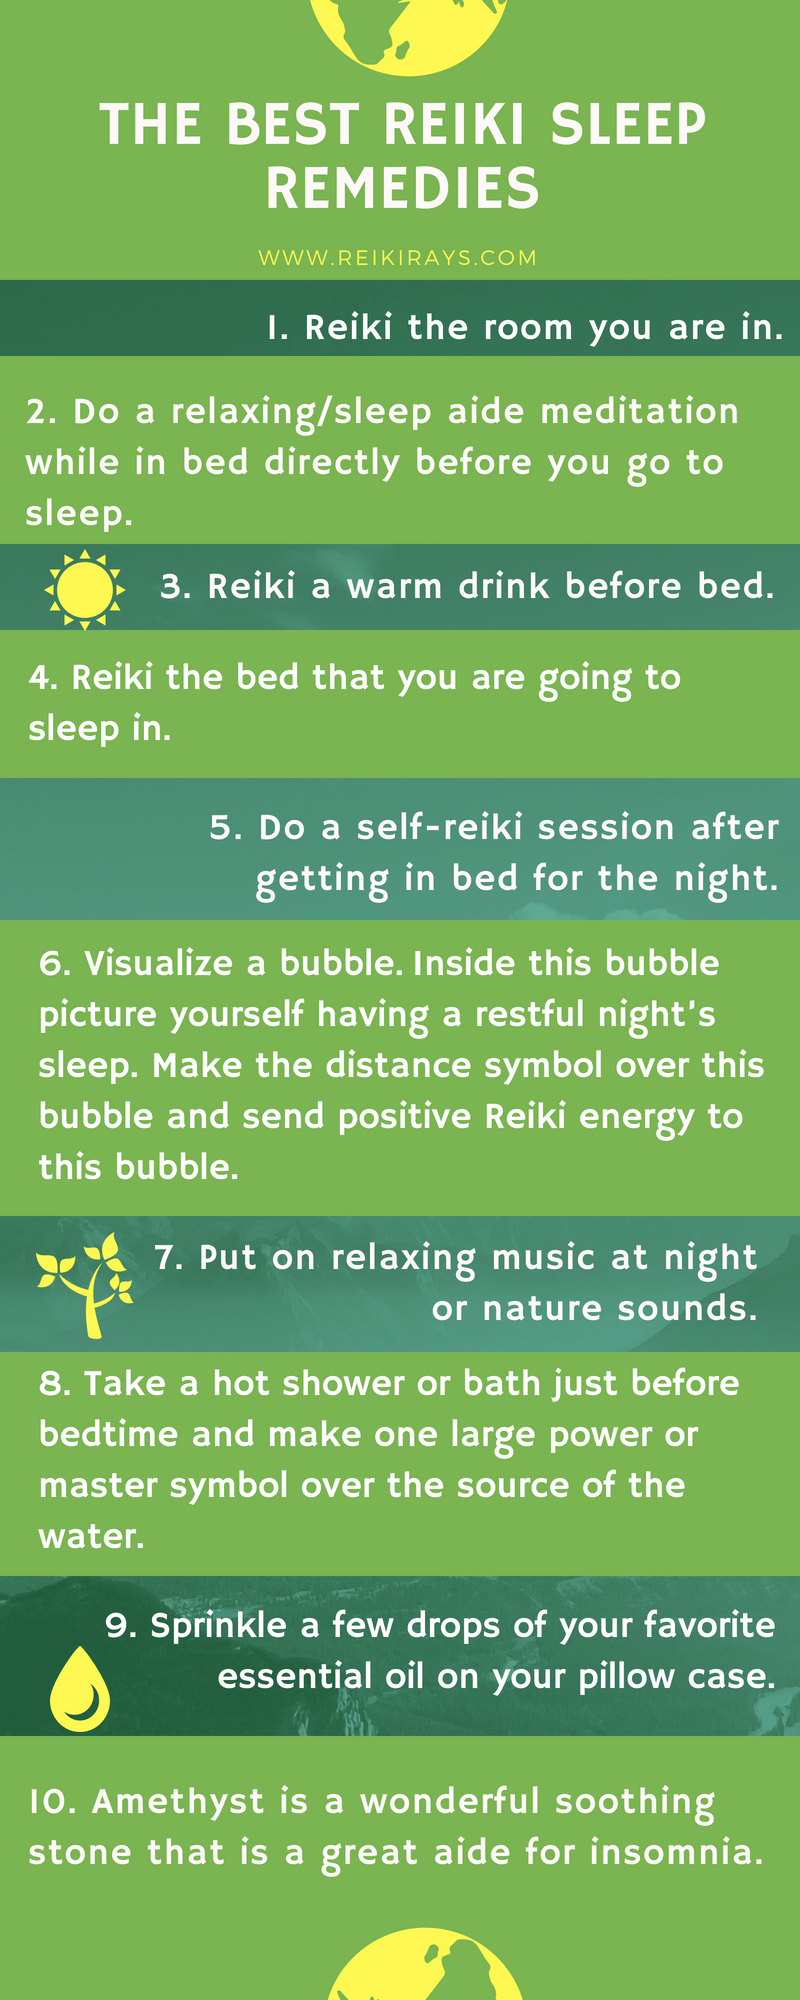 Best Reiki Sleep Remedies